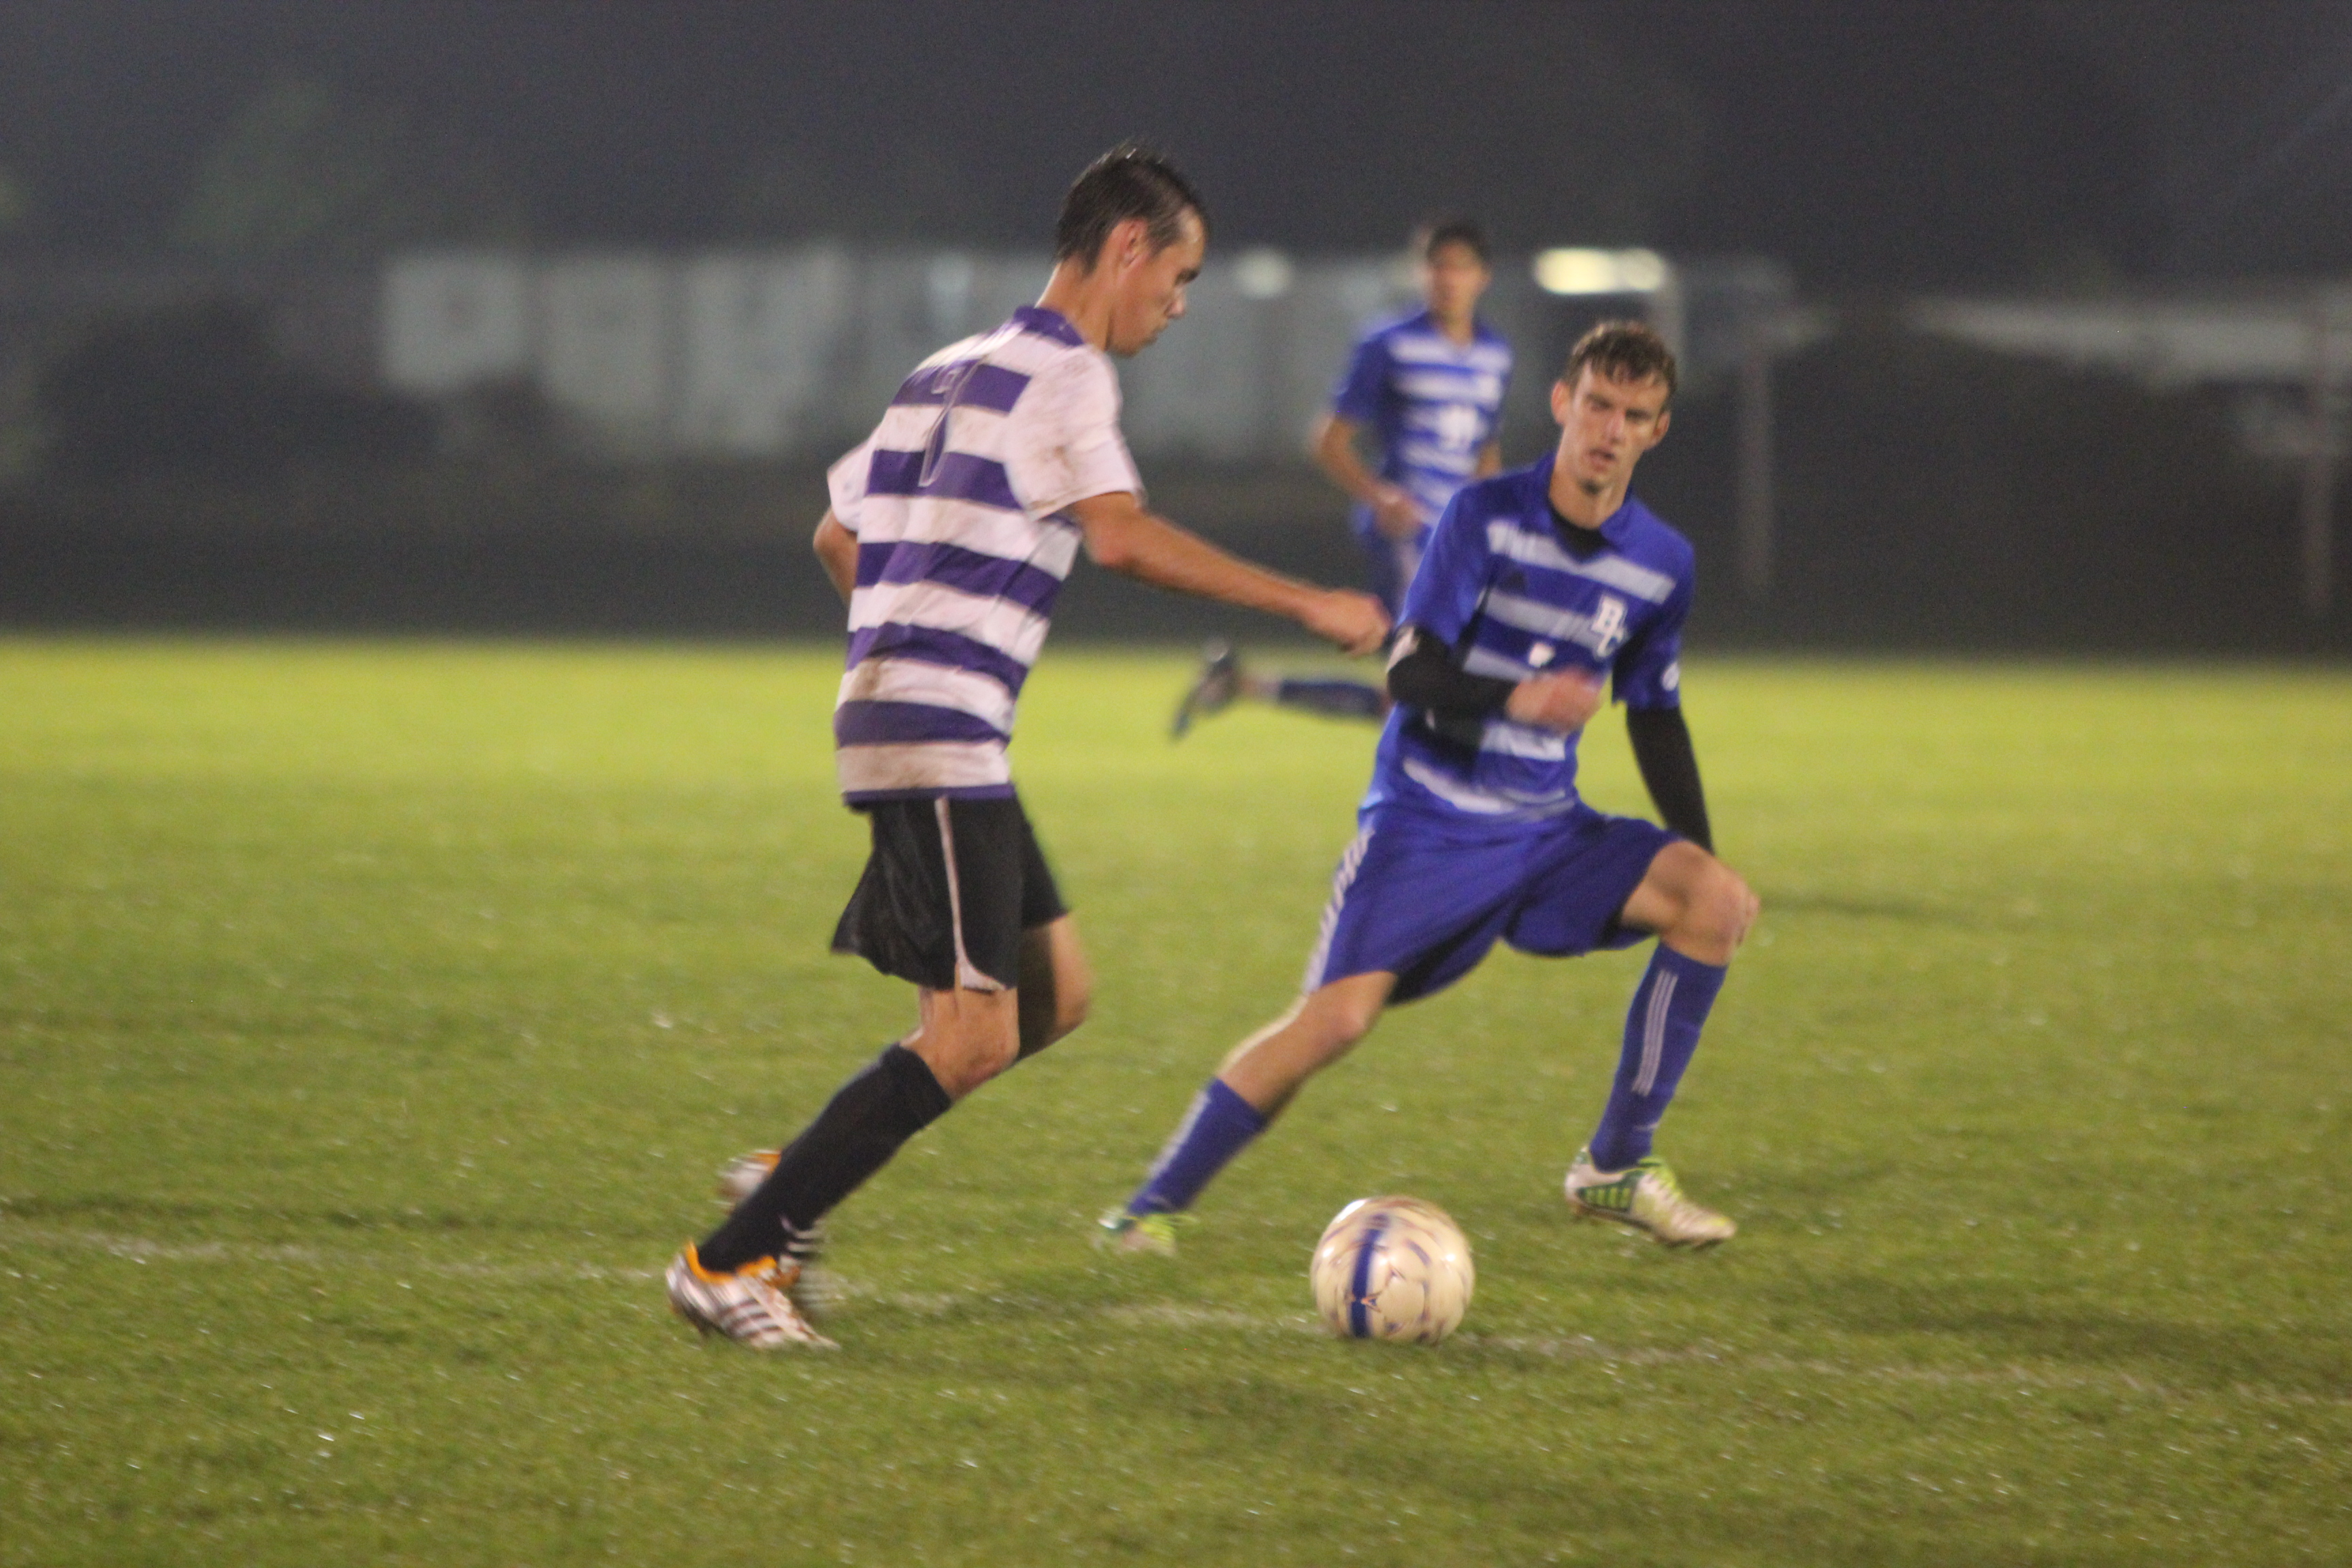 Chris Vendrely fends off an opponent as he dribbles the ball down the field during a soccer game